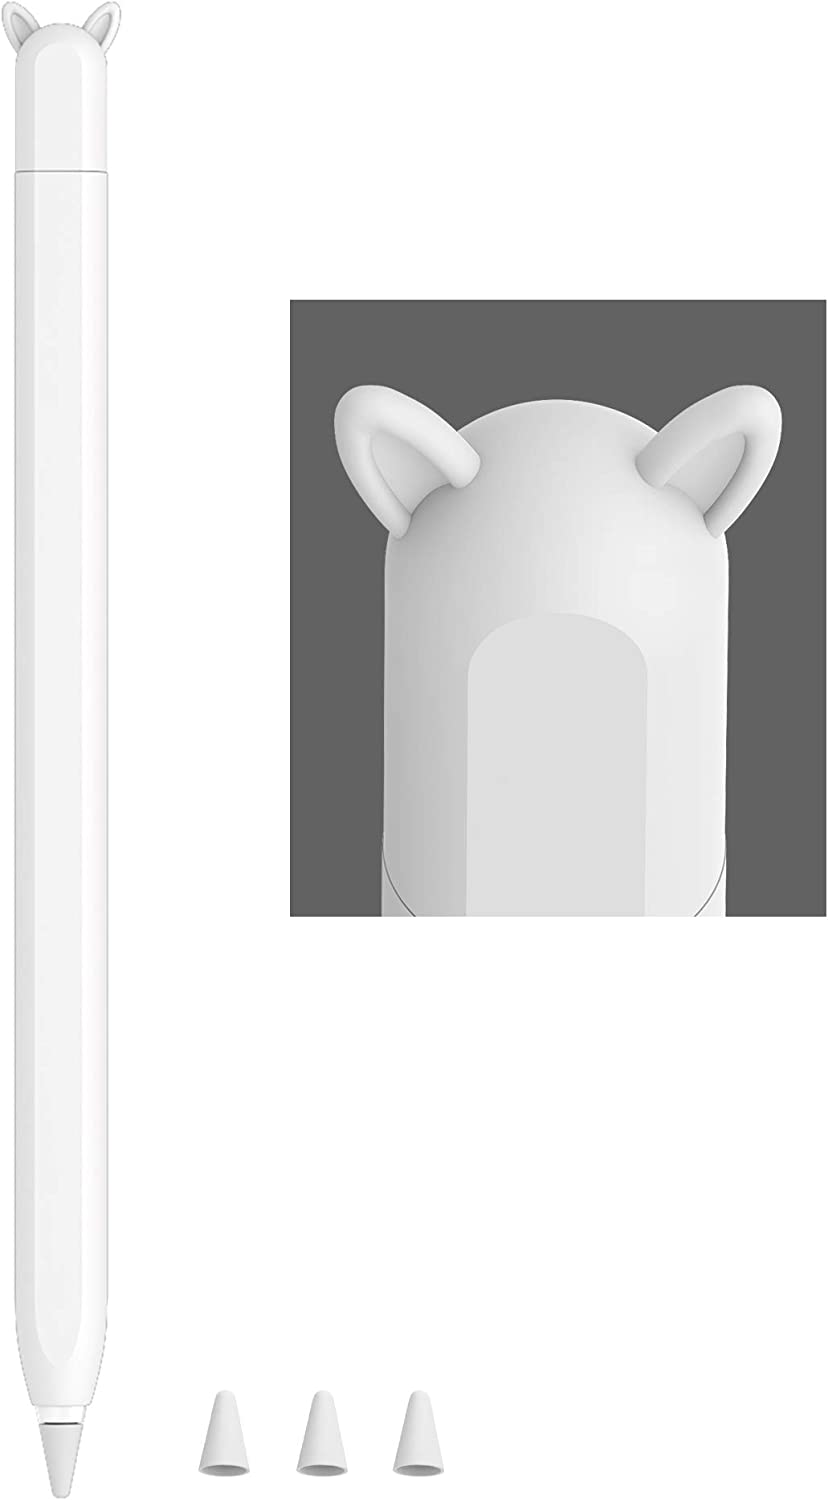 Cute Ear Case Silicone Skin Cover for Apple Pencil 2nd Generation, and Protective Nib Cover Accessories Compatible with iPad Pro 11 12.9 inch,White